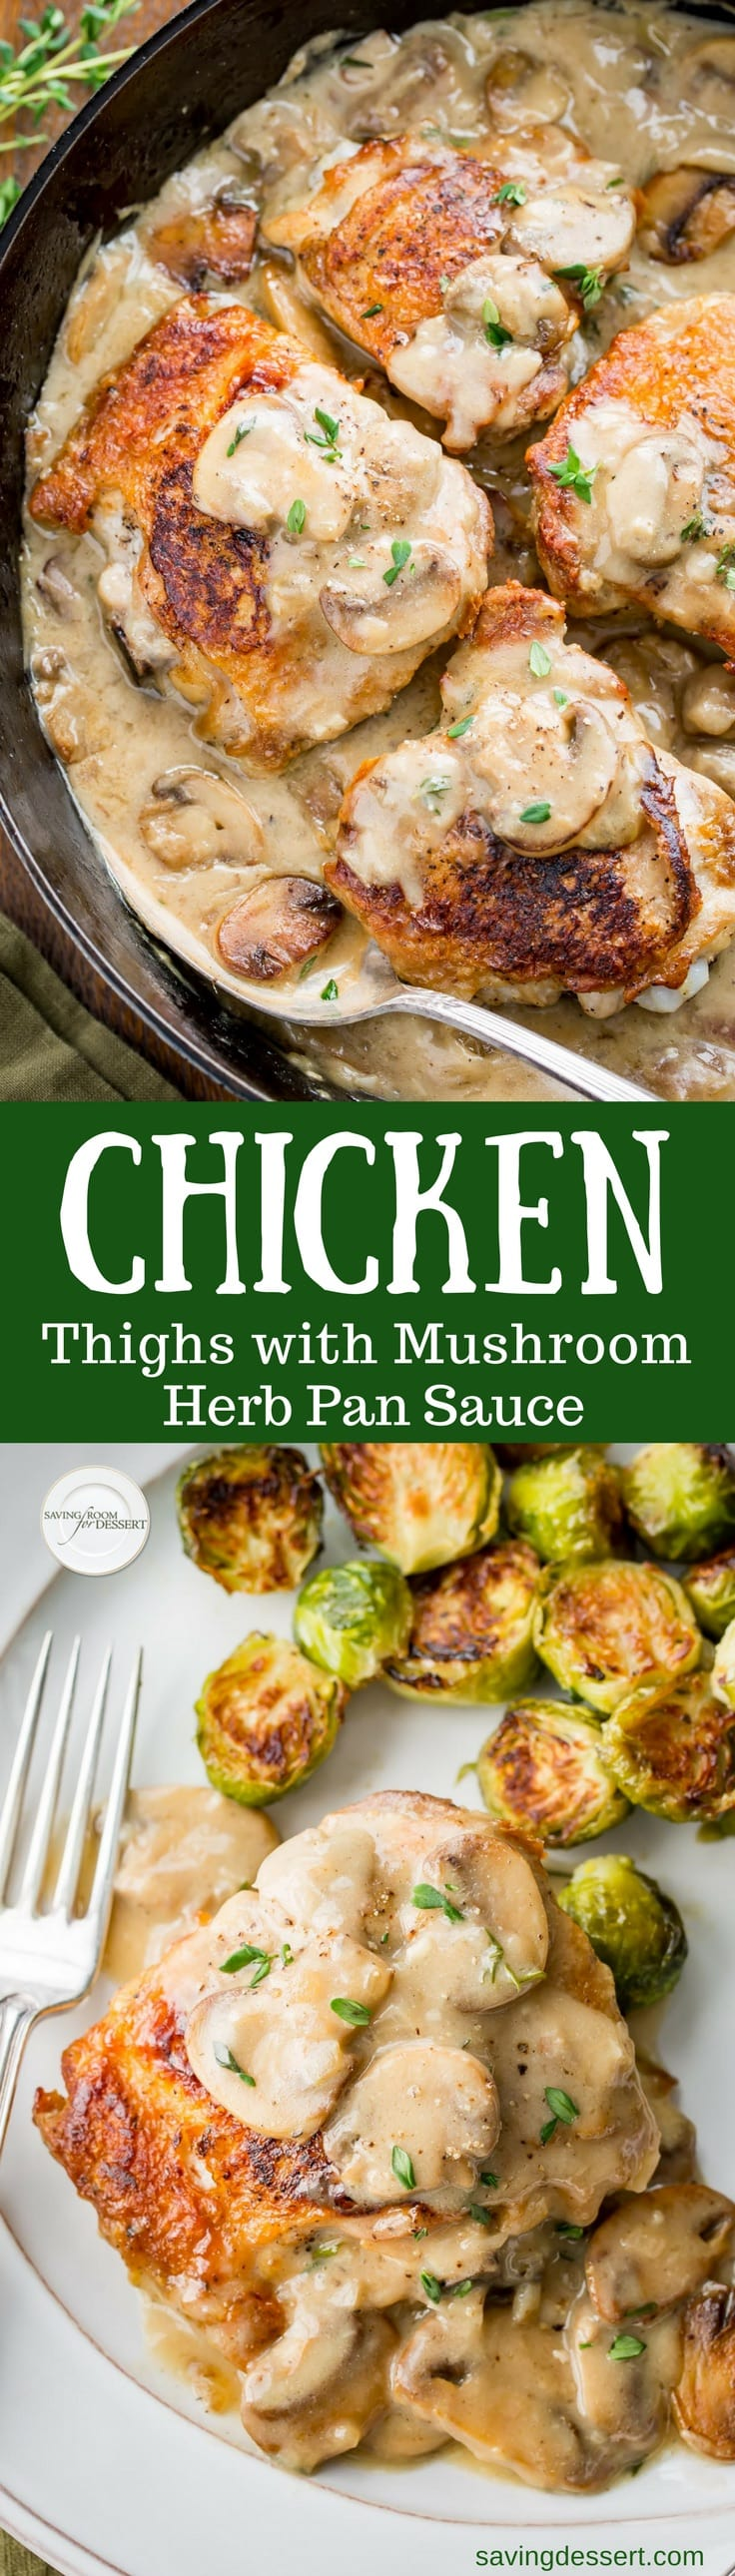 Chicken Thighs with Mushroom Herb Pan Sauce - tender, juicy and inexpensive, chicken thighs are a terrific addition to the weeknight recipe rotation. Simmered gently in our rich and flavorful pan sauce, these versatile thighs may be your new family favorite! www.savingdessert.com #savingroomfordessert #chickenthighs #mushroom #chicken #skilletchicken #easydinner #castironskillet #mushroompansauce #pansauce